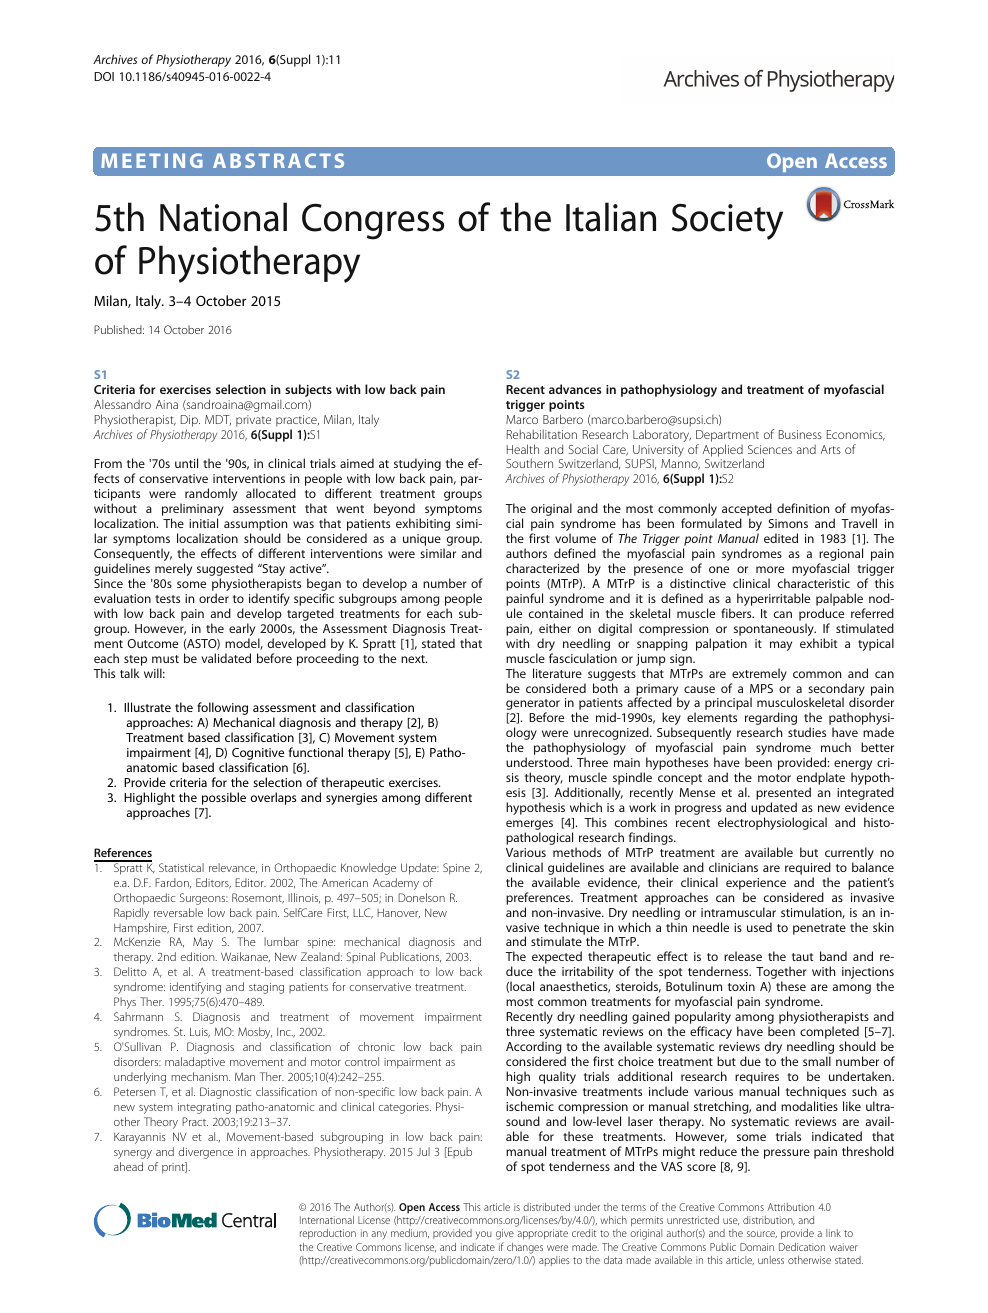 5th National Congress of the Italian Society of Physiotherapy